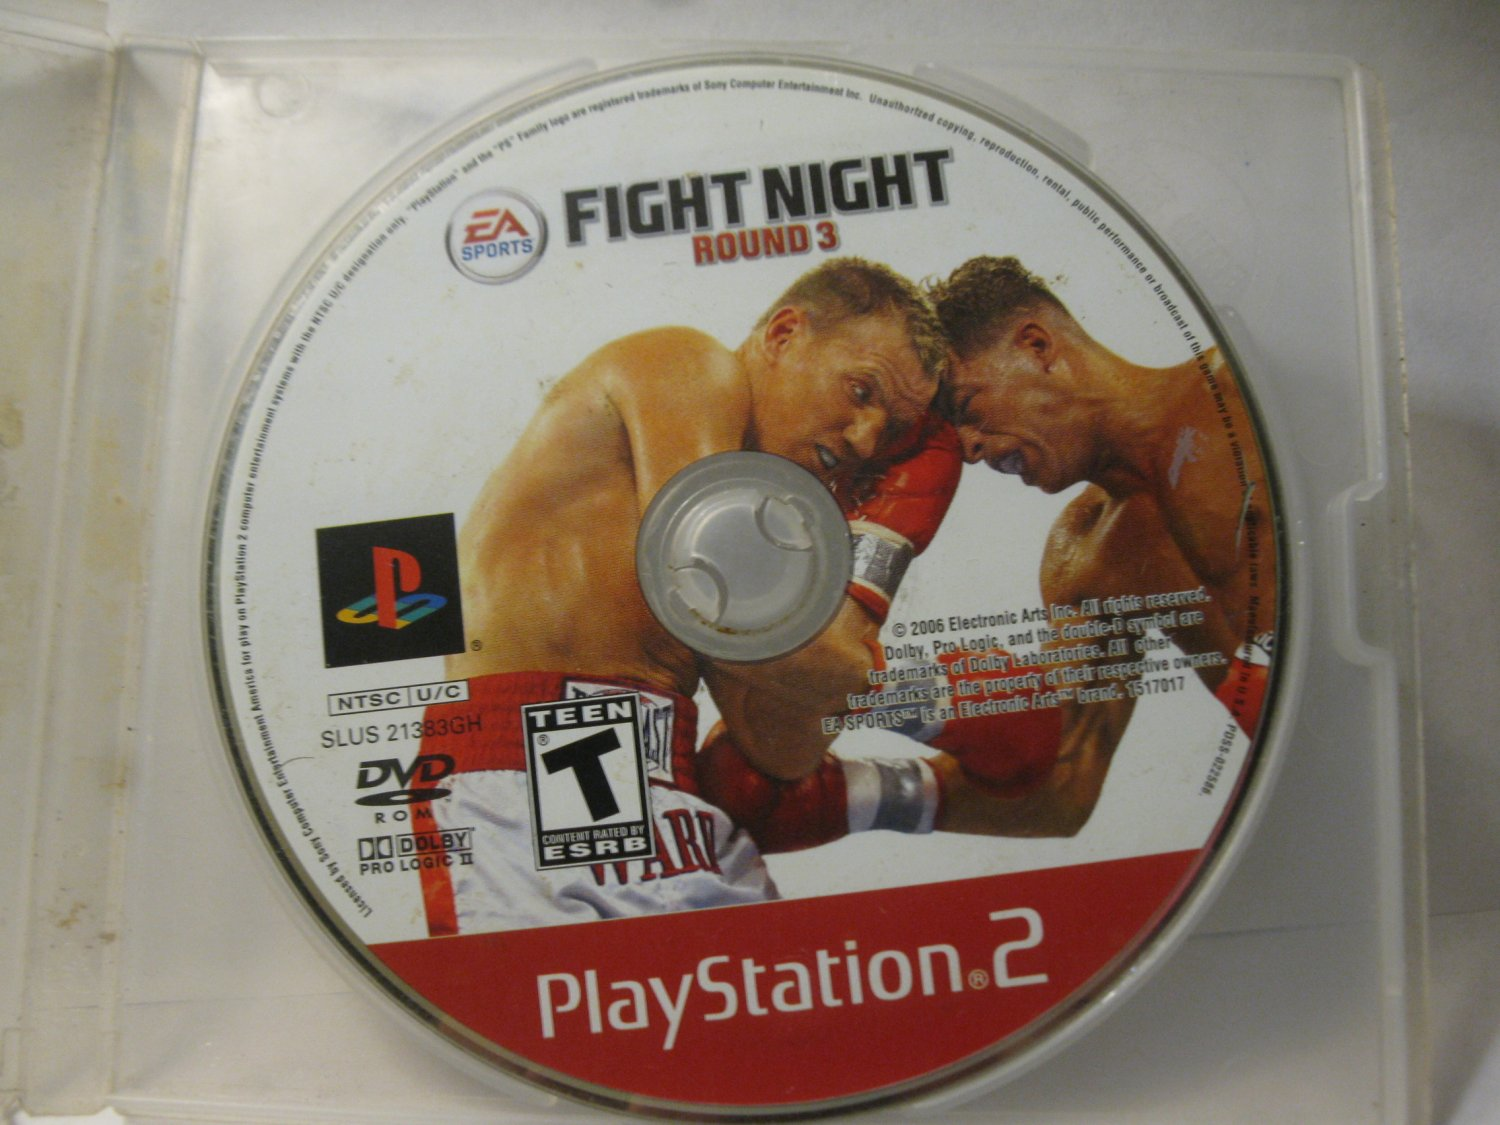 Playstation 2 / PS2 Video Game: Fight Night Round 3